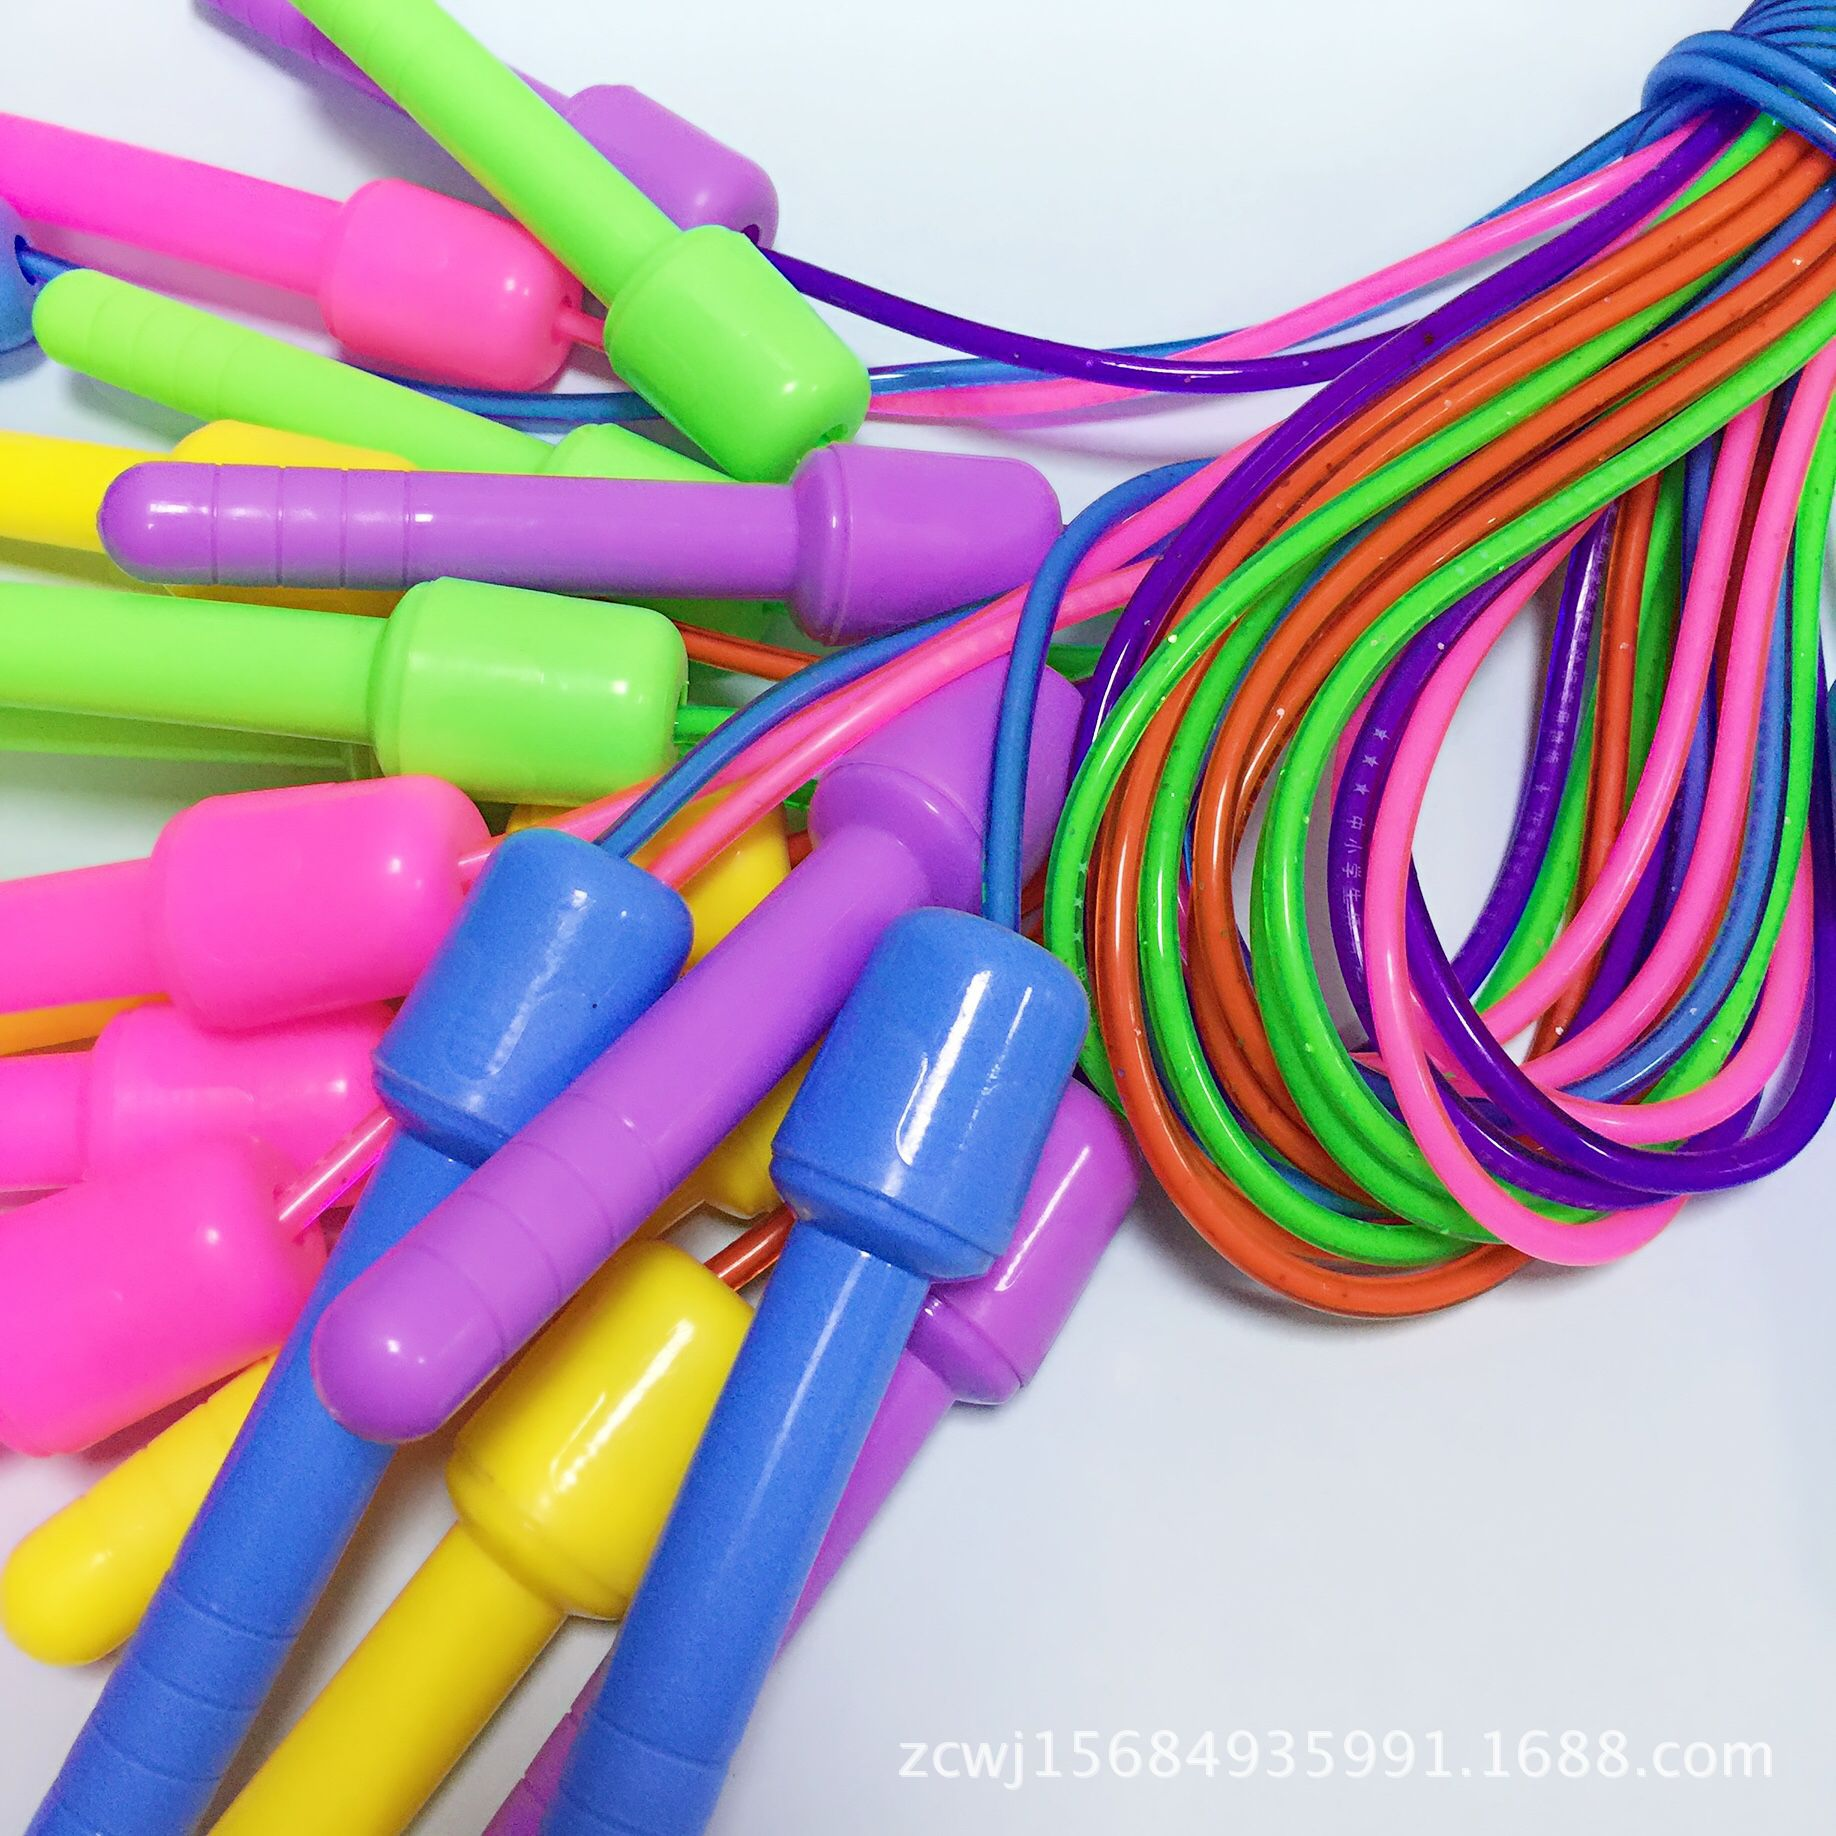 Primary School STUDENT'S Only Standard Jump Rope Plastic Color Rough Training Sports Supplies